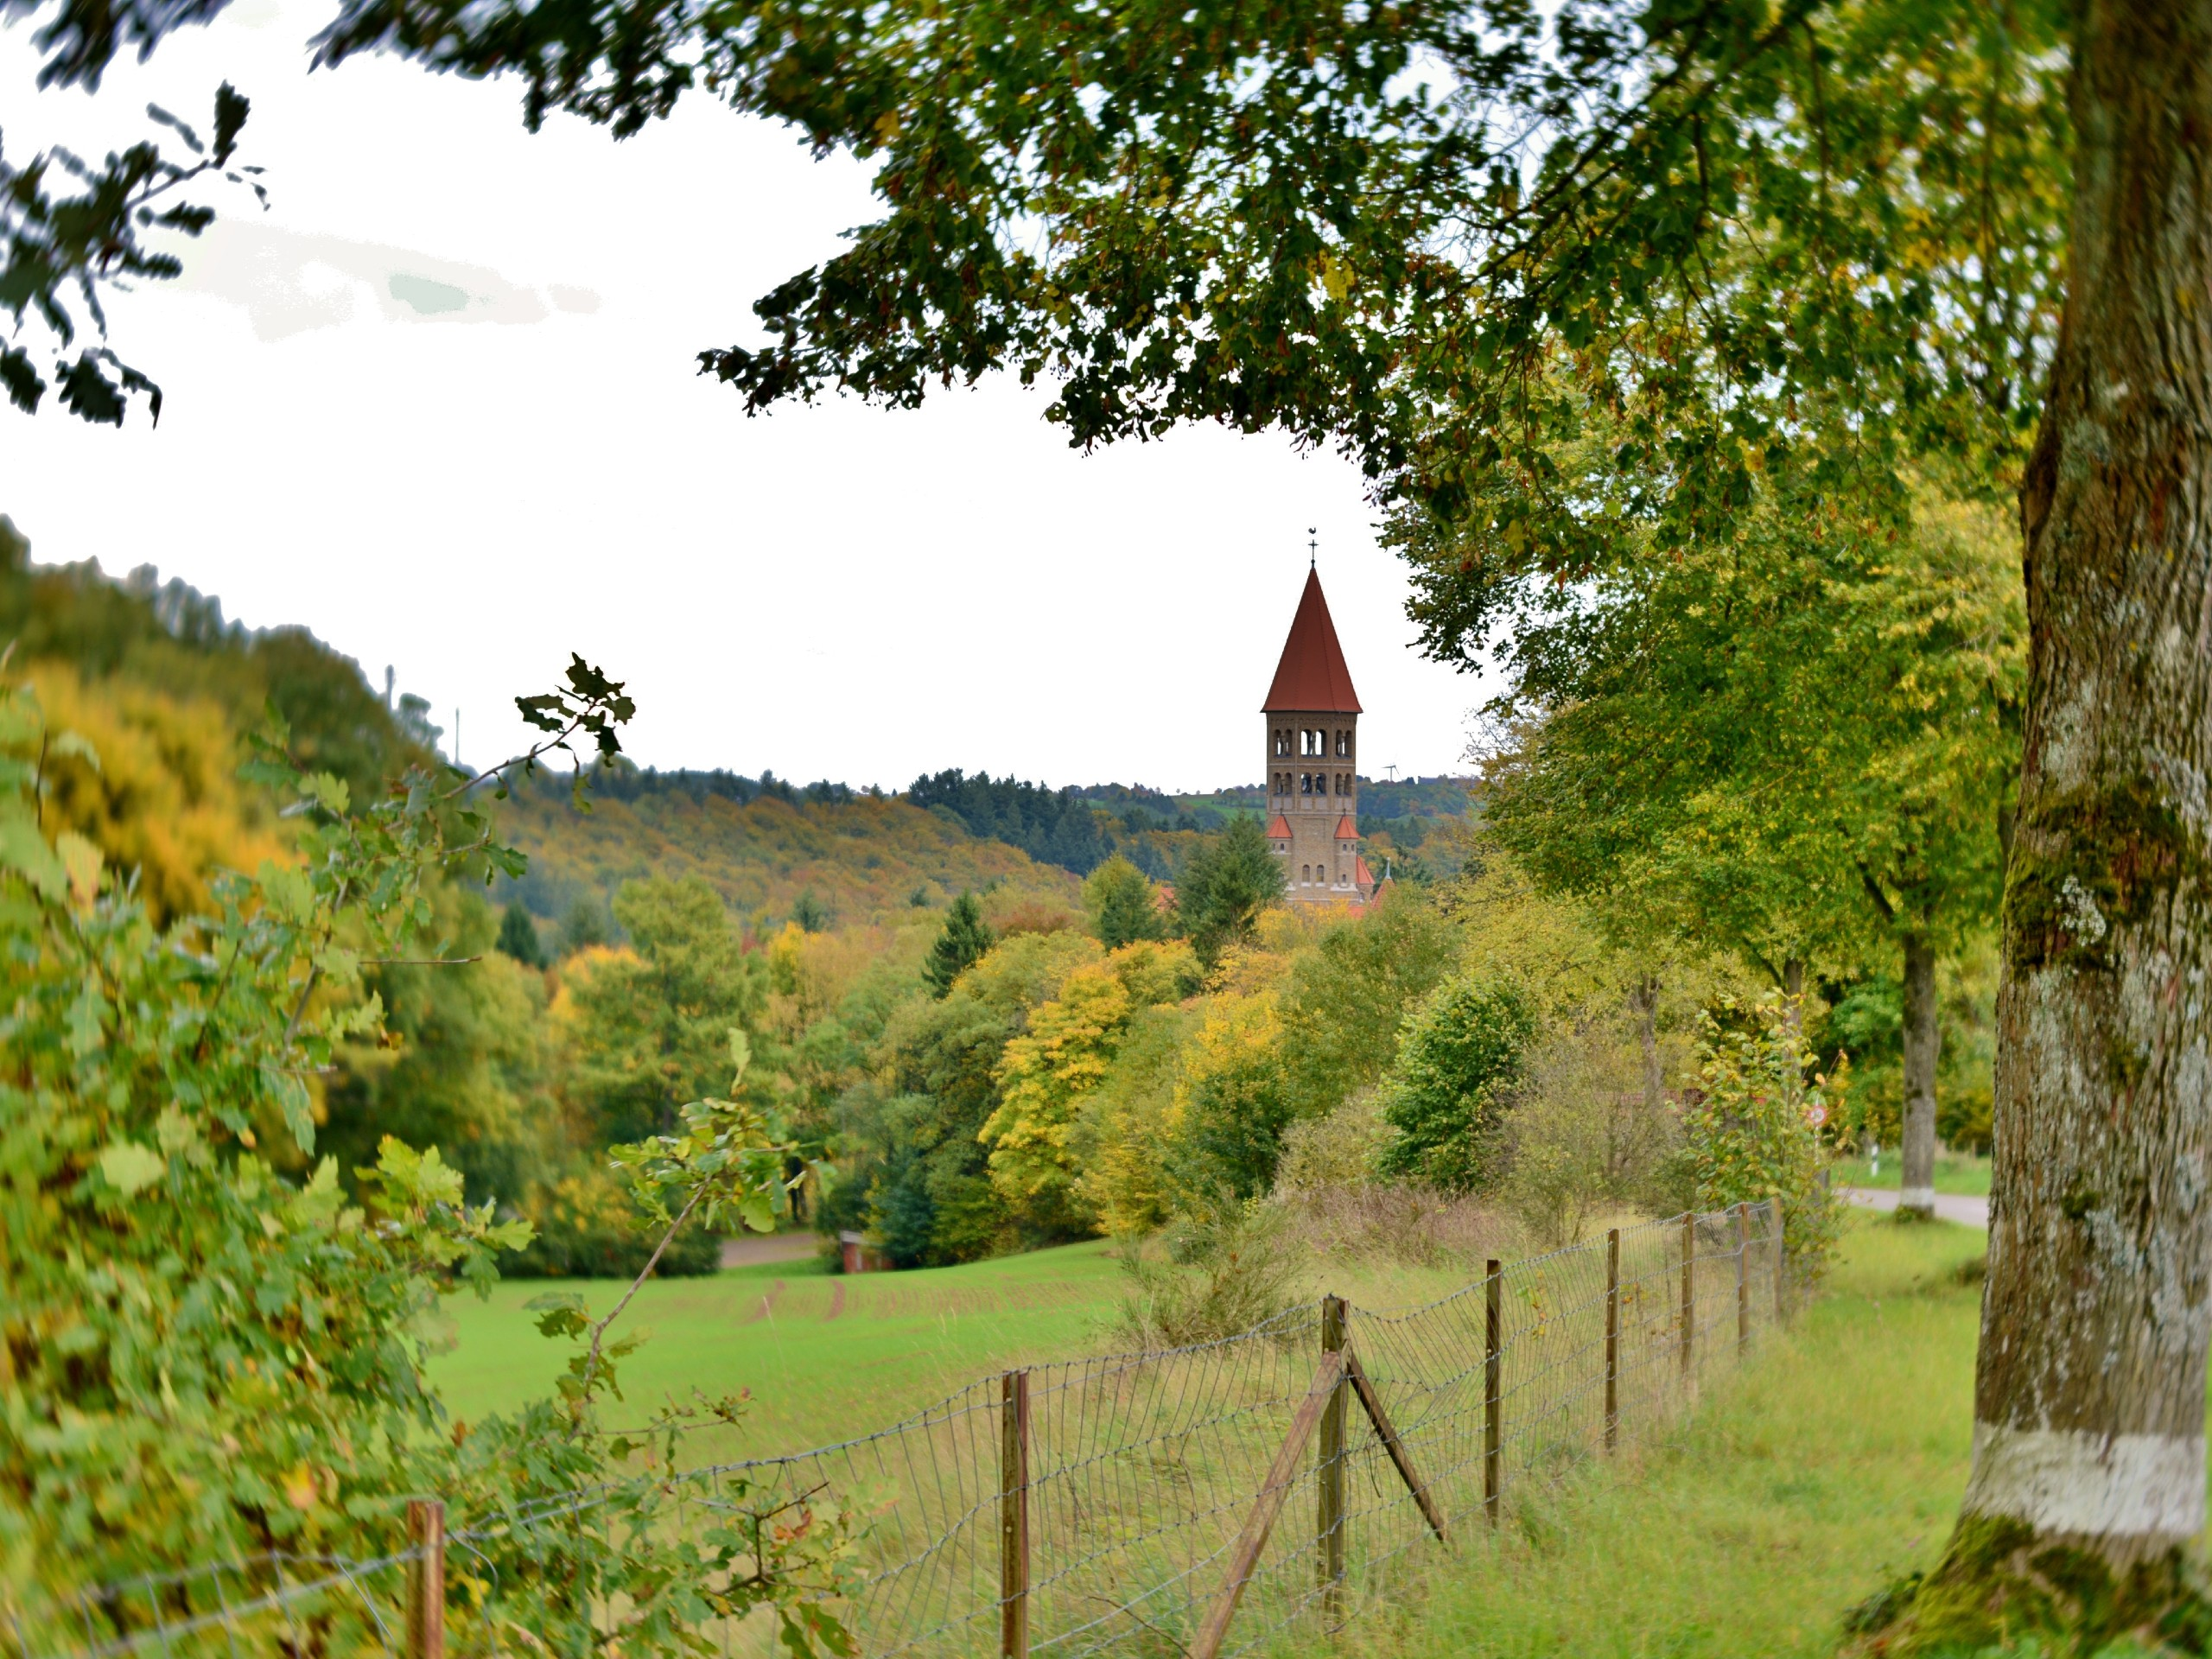 Green pastures and a church, seen in Belgium